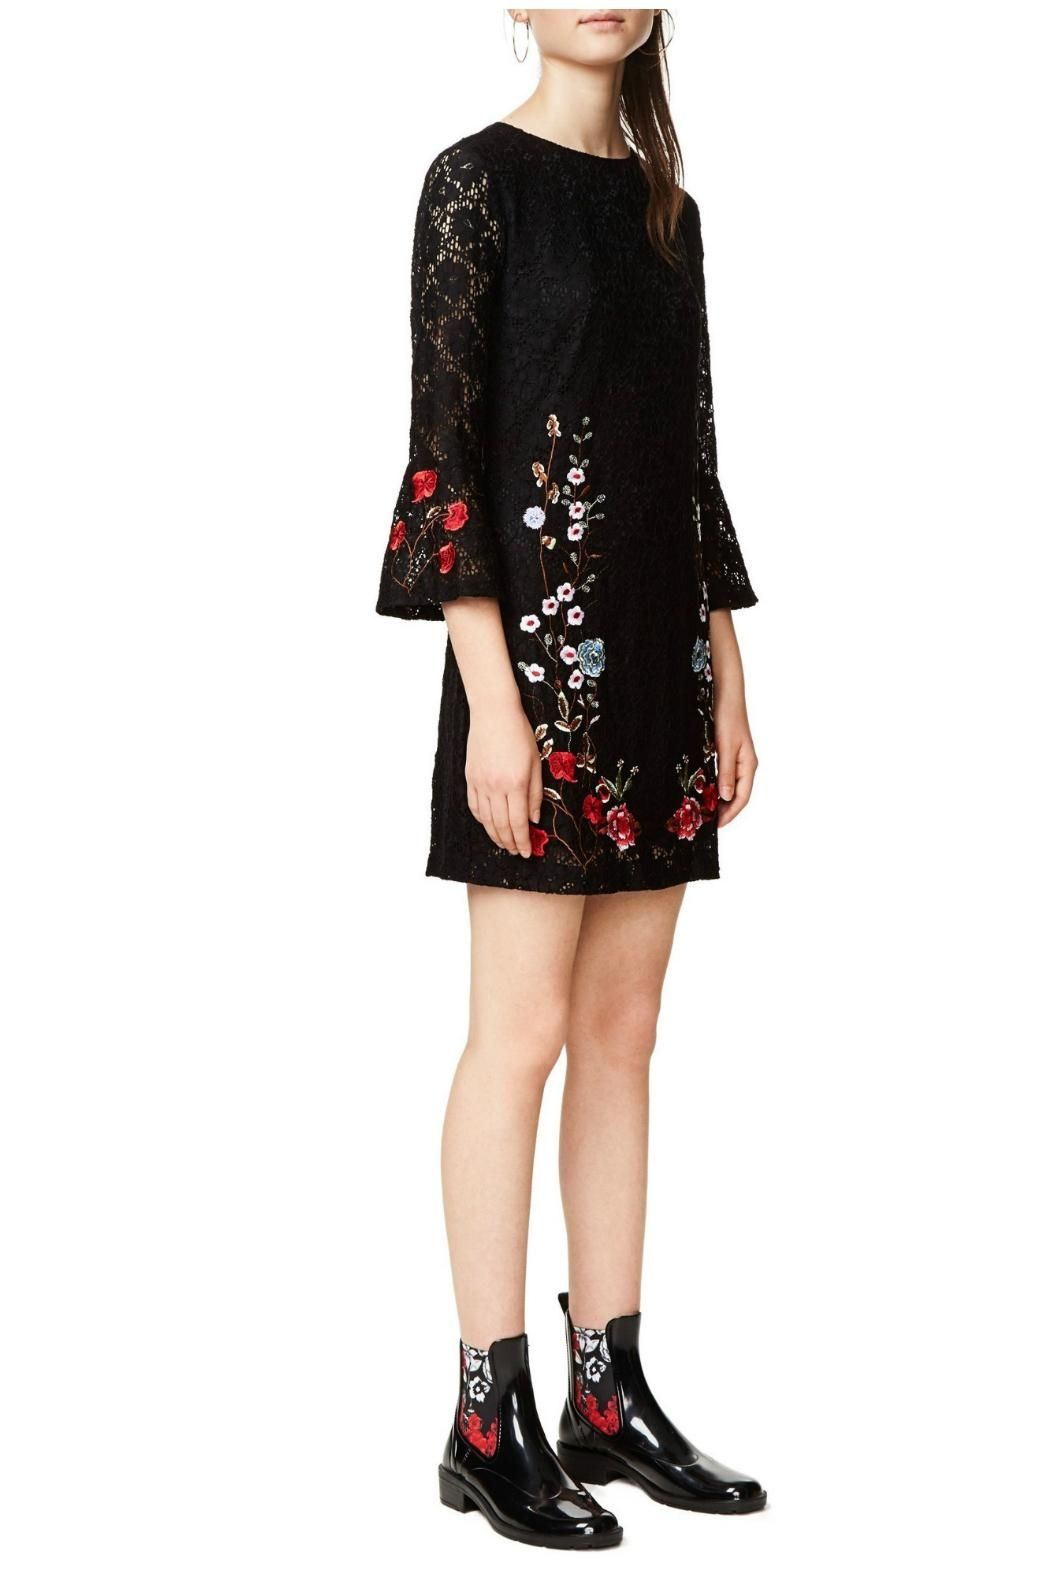 Desigual - Spain Black Lacy Dress - Front Full Image